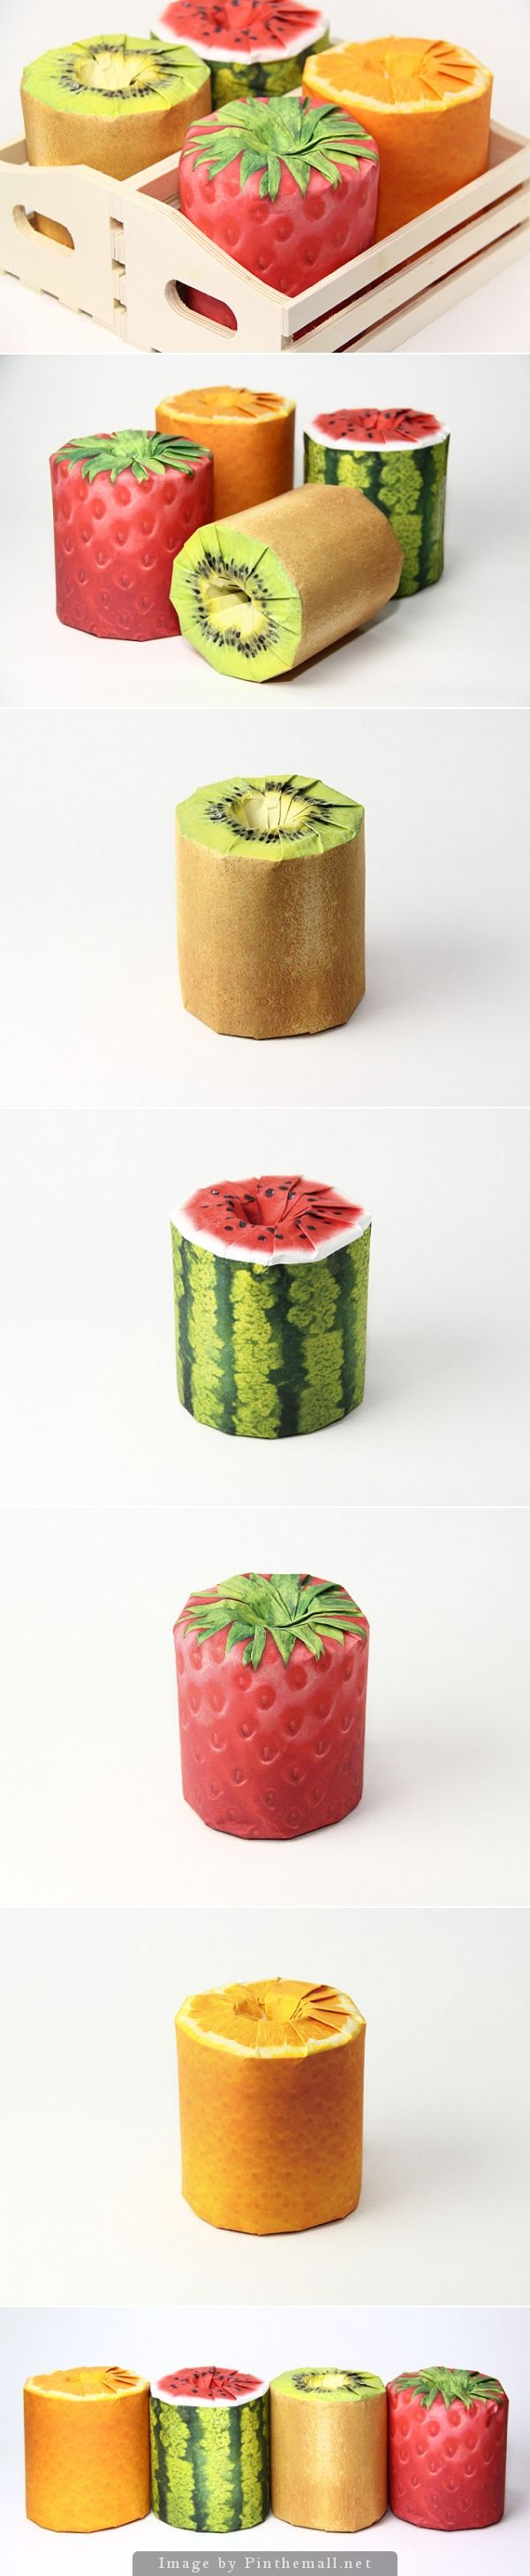 Why can't all toilet paper look like this? Fun packaging concept that I would buy curated by Packaging Diva PD created via http://www.packagingoftheworld.com/2014/09/fruits-toilet-paper-concept.html